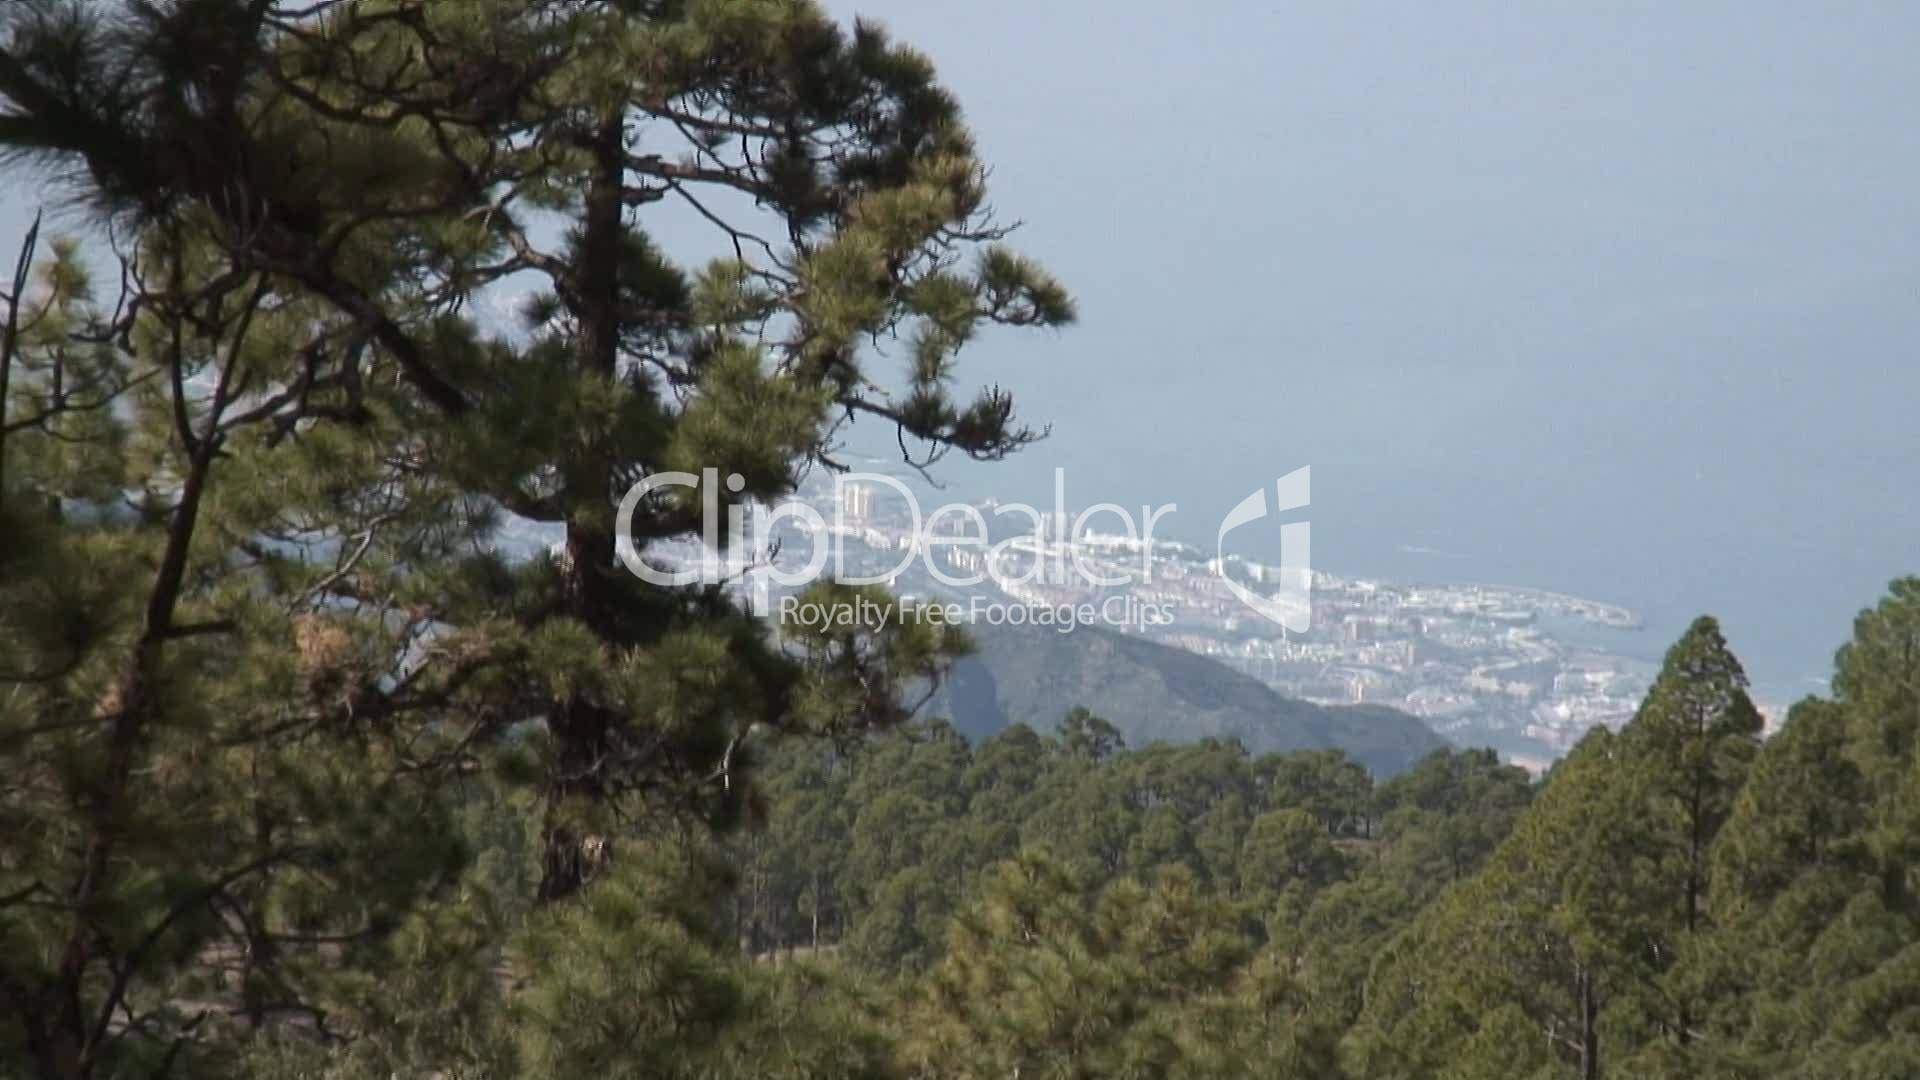 stadt auf teneriffa royalty free video and stock footage. Black Bedroom Furniture Sets. Home Design Ideas